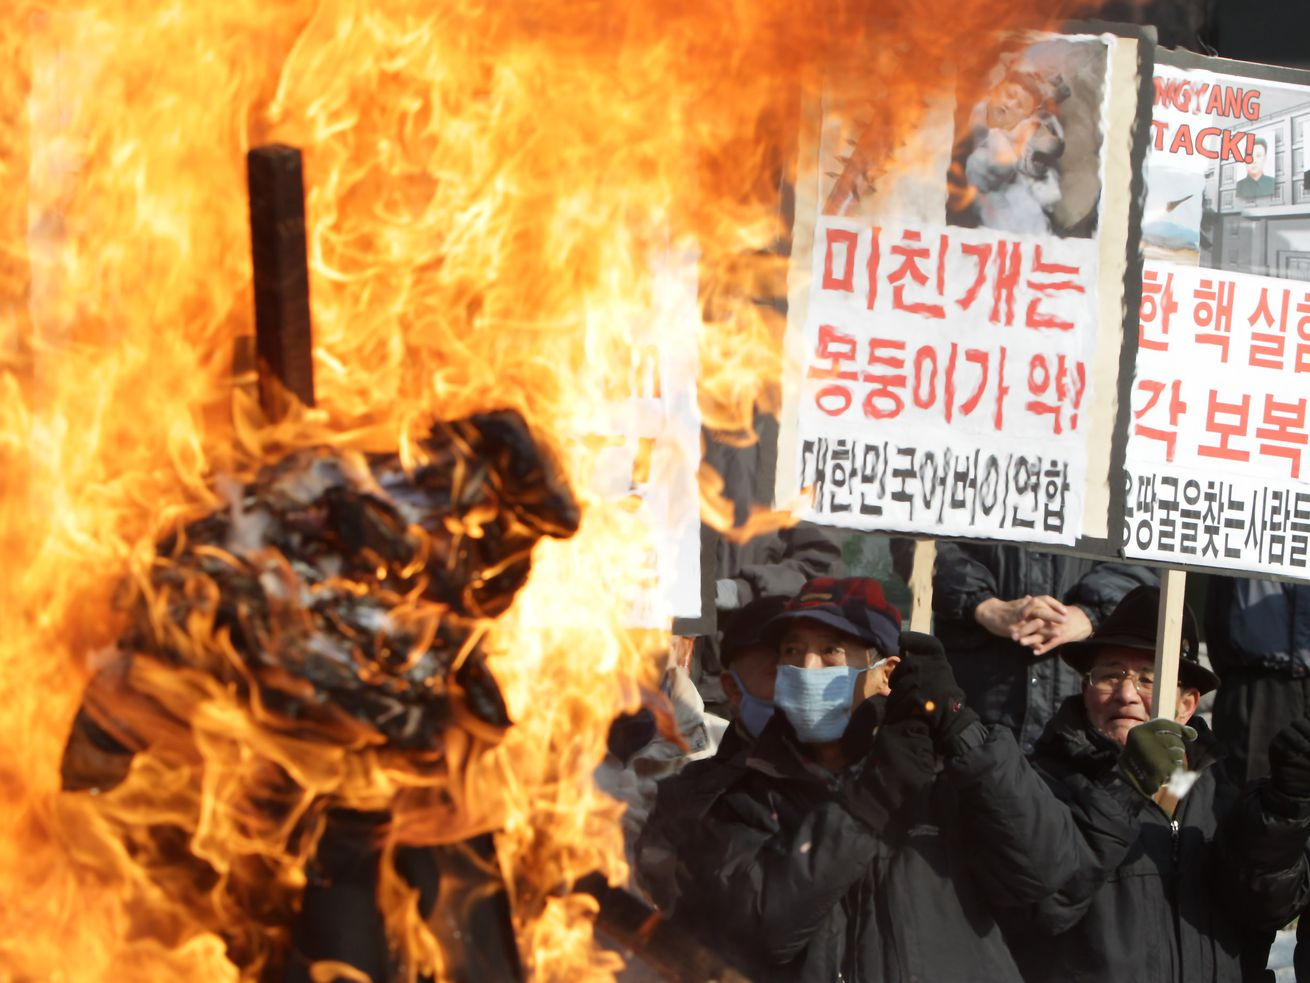 South Korean conservative protesters participate in a rally a day after North Korea announced it had conducted a third nuclear test on February 13, 2013, in Seoul.